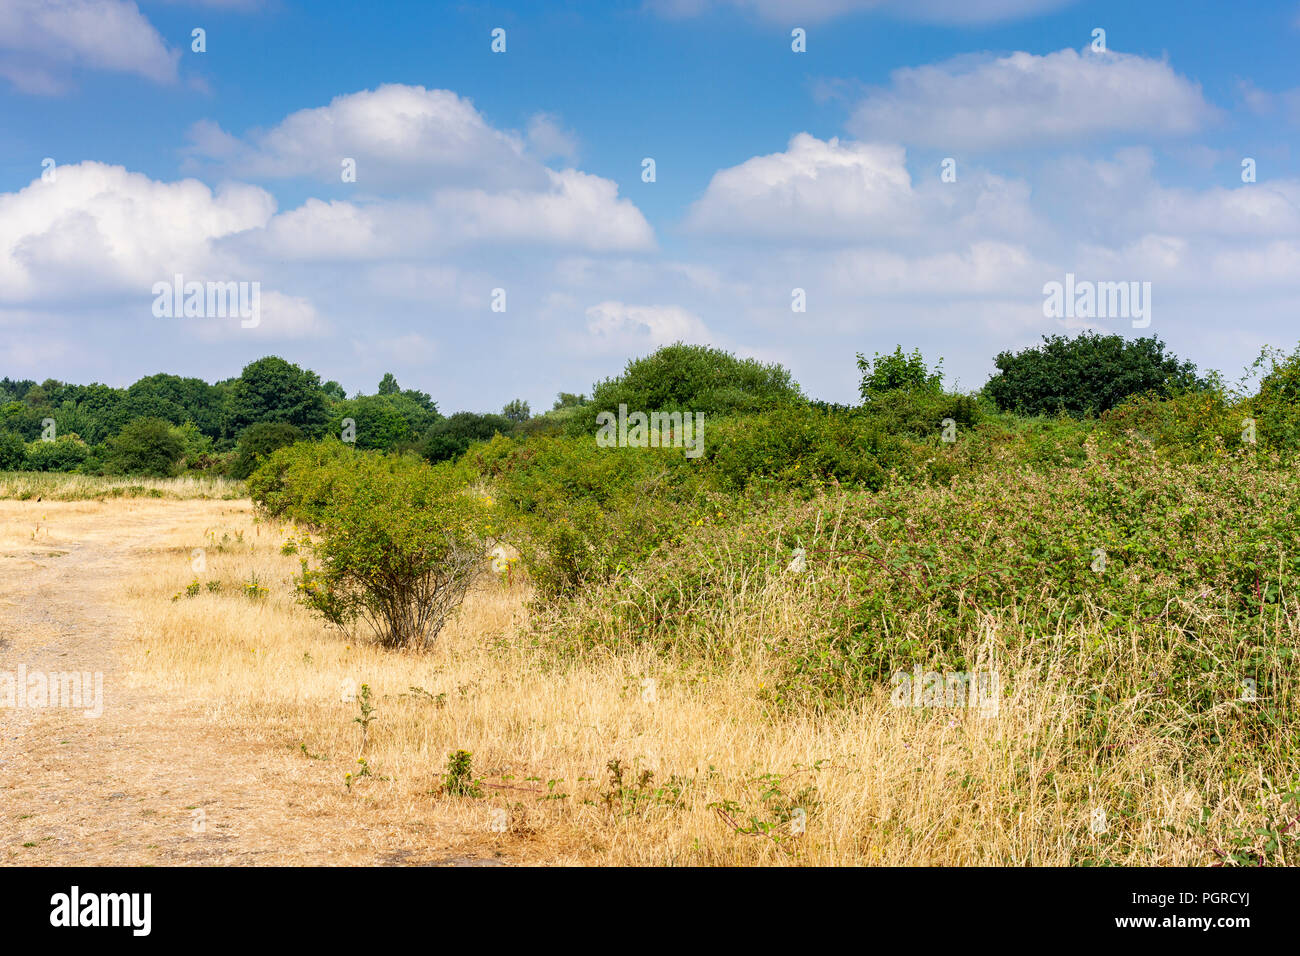 View of common land on a hot sunny day in Dorset, UK Stock Photo